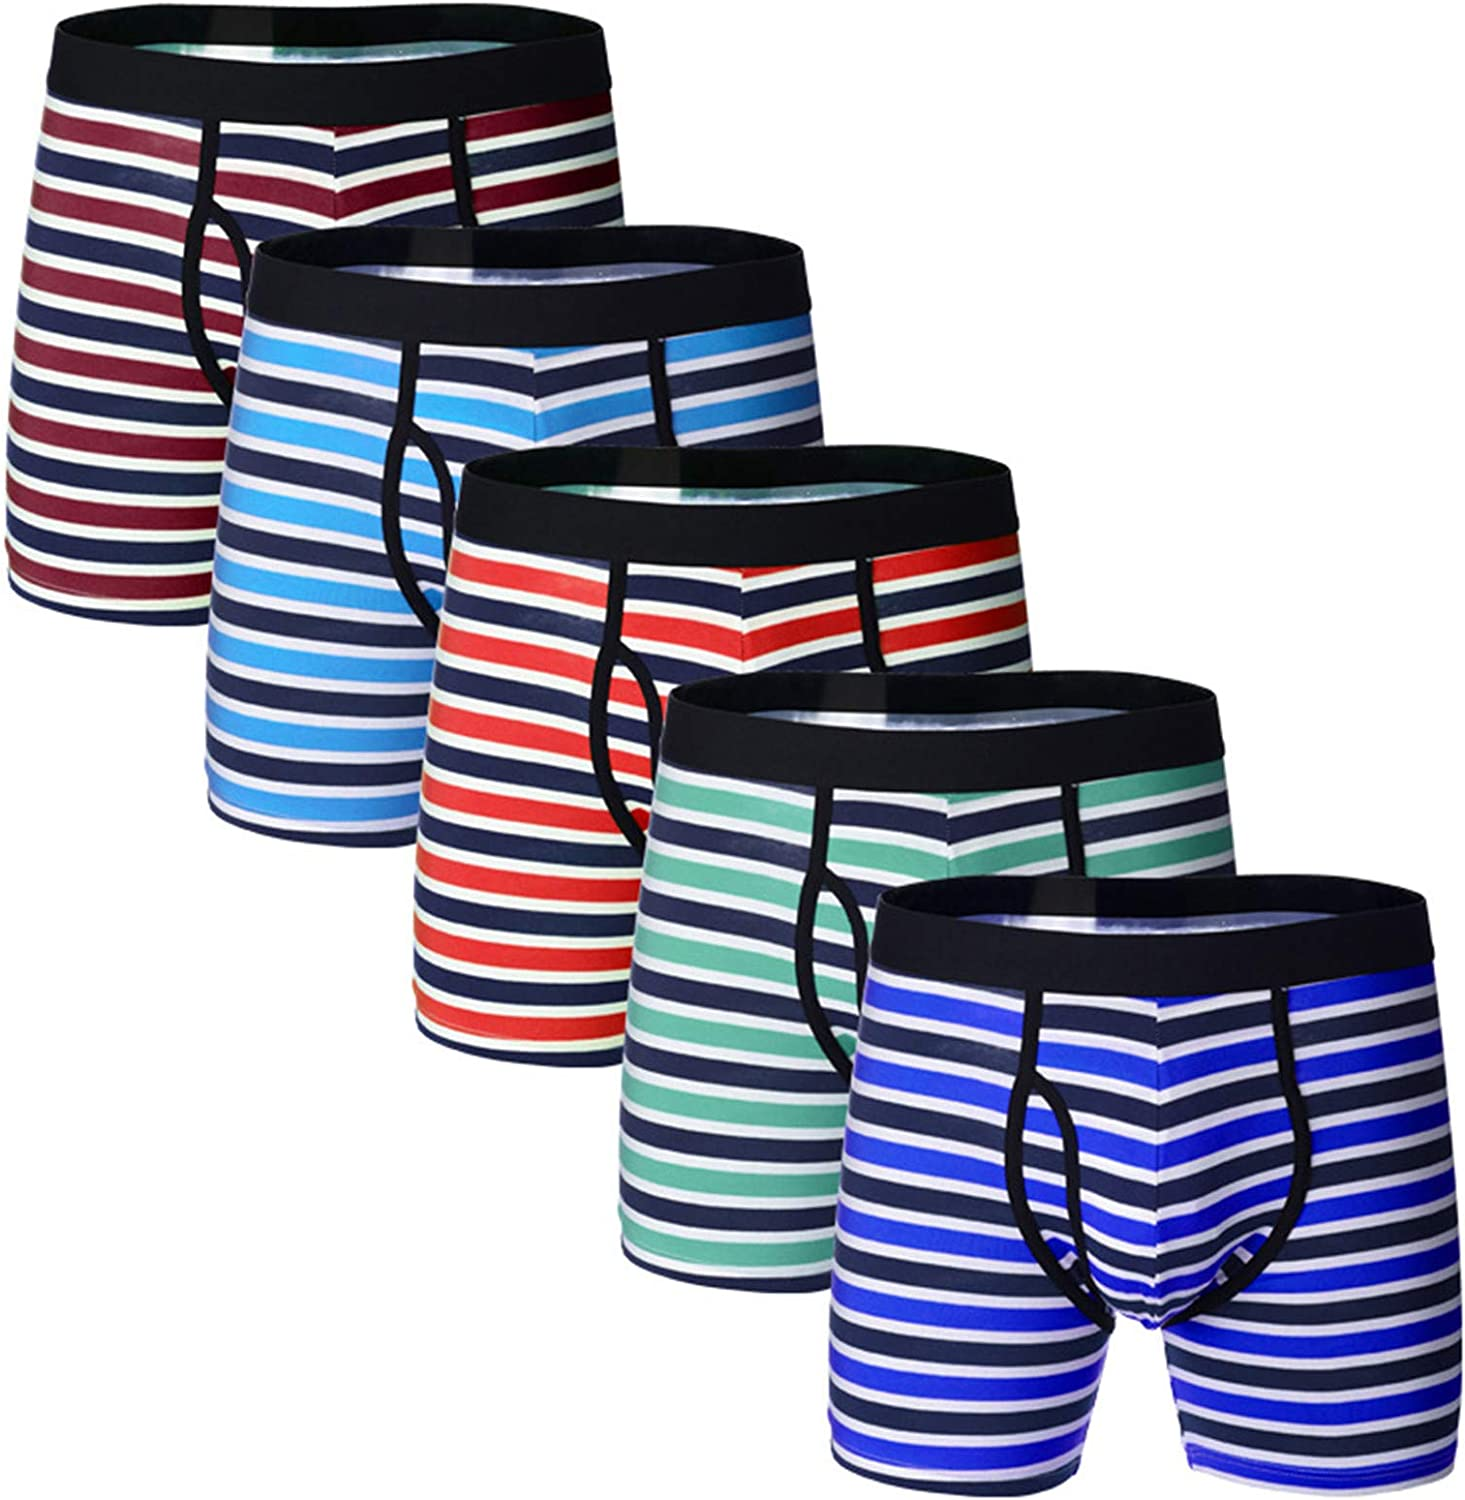 Clearance Men's Luxury Bamboo Boxer Underwear Ultra Soft Breathable Stripes Boxer Briefs Underpants Clothing (Multicolor 5pcs,Small)